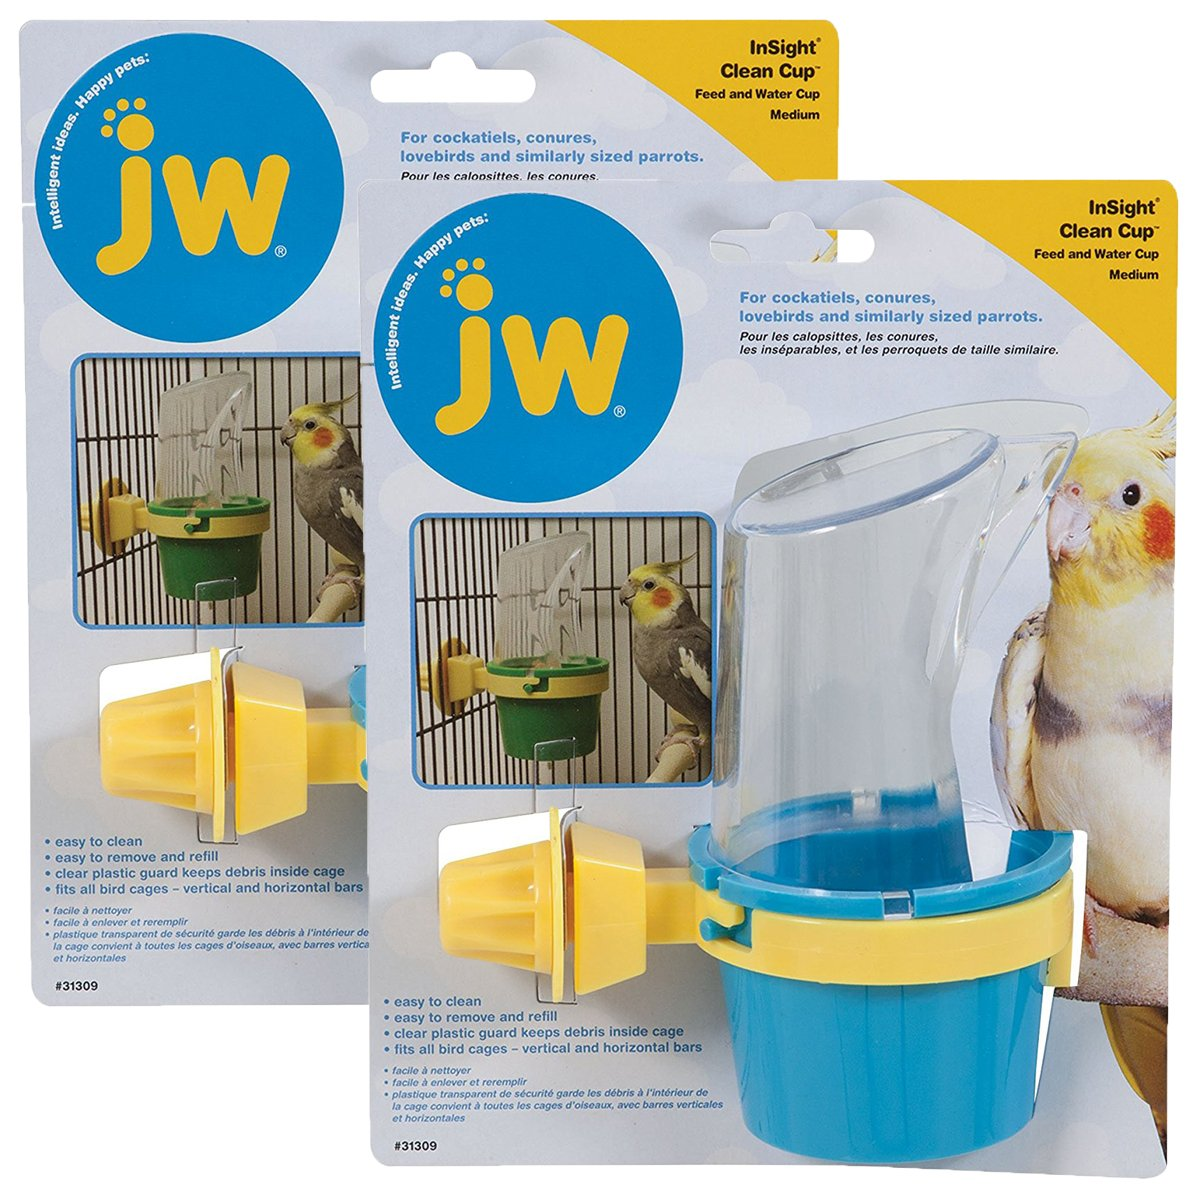 JW Pet Company Clean Cup Feeder and Water Cup Bird Accessory Medium Colors may vary